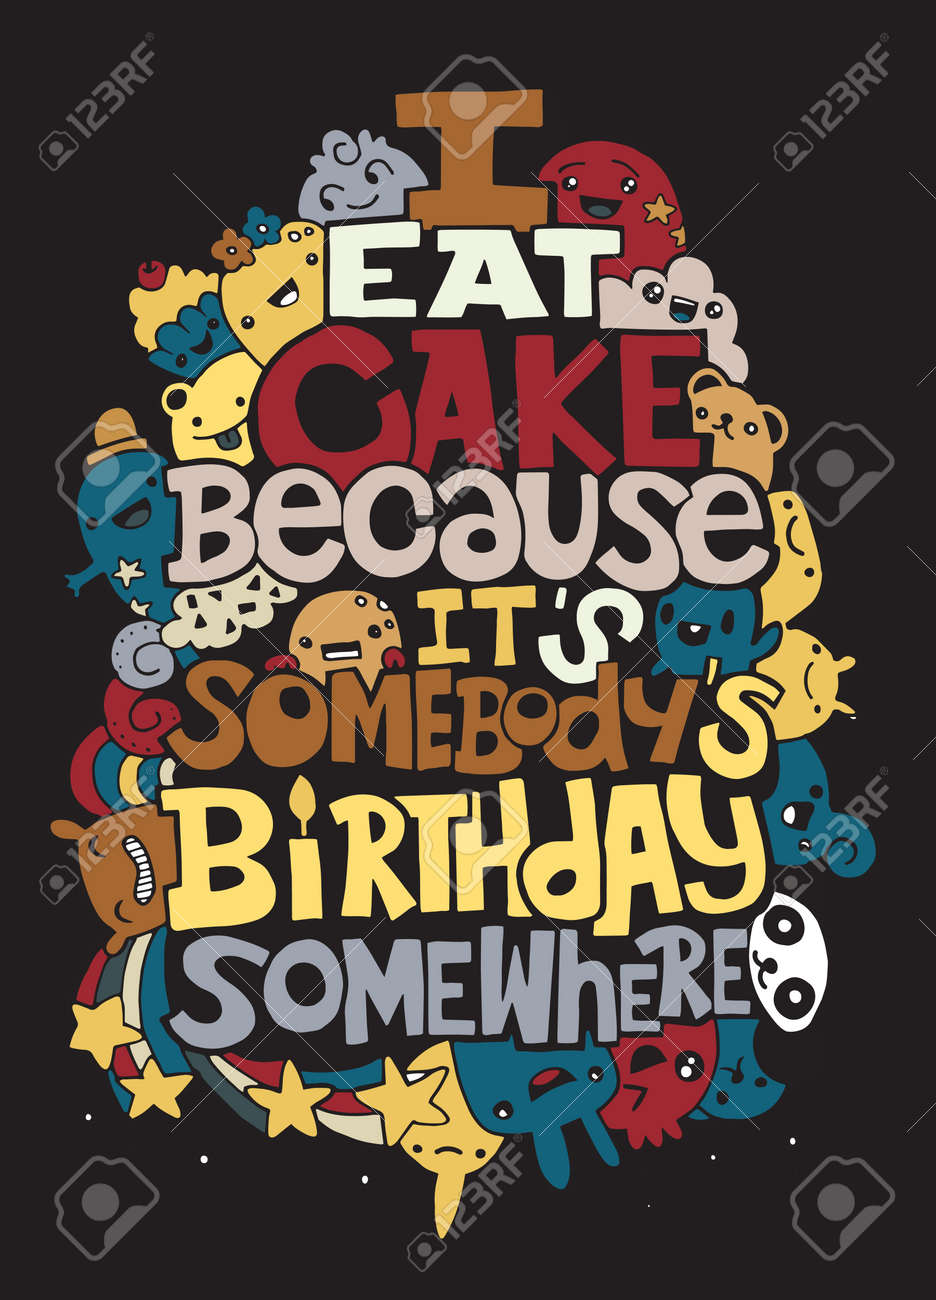 I eat cake because it somebodys birthday hand drawn poster with banque dimages i eat cake because it somebodys birthday hand drawn poster with funny but true quotes hand drawing cute doodle monster groupflat altavistaventures Gallery